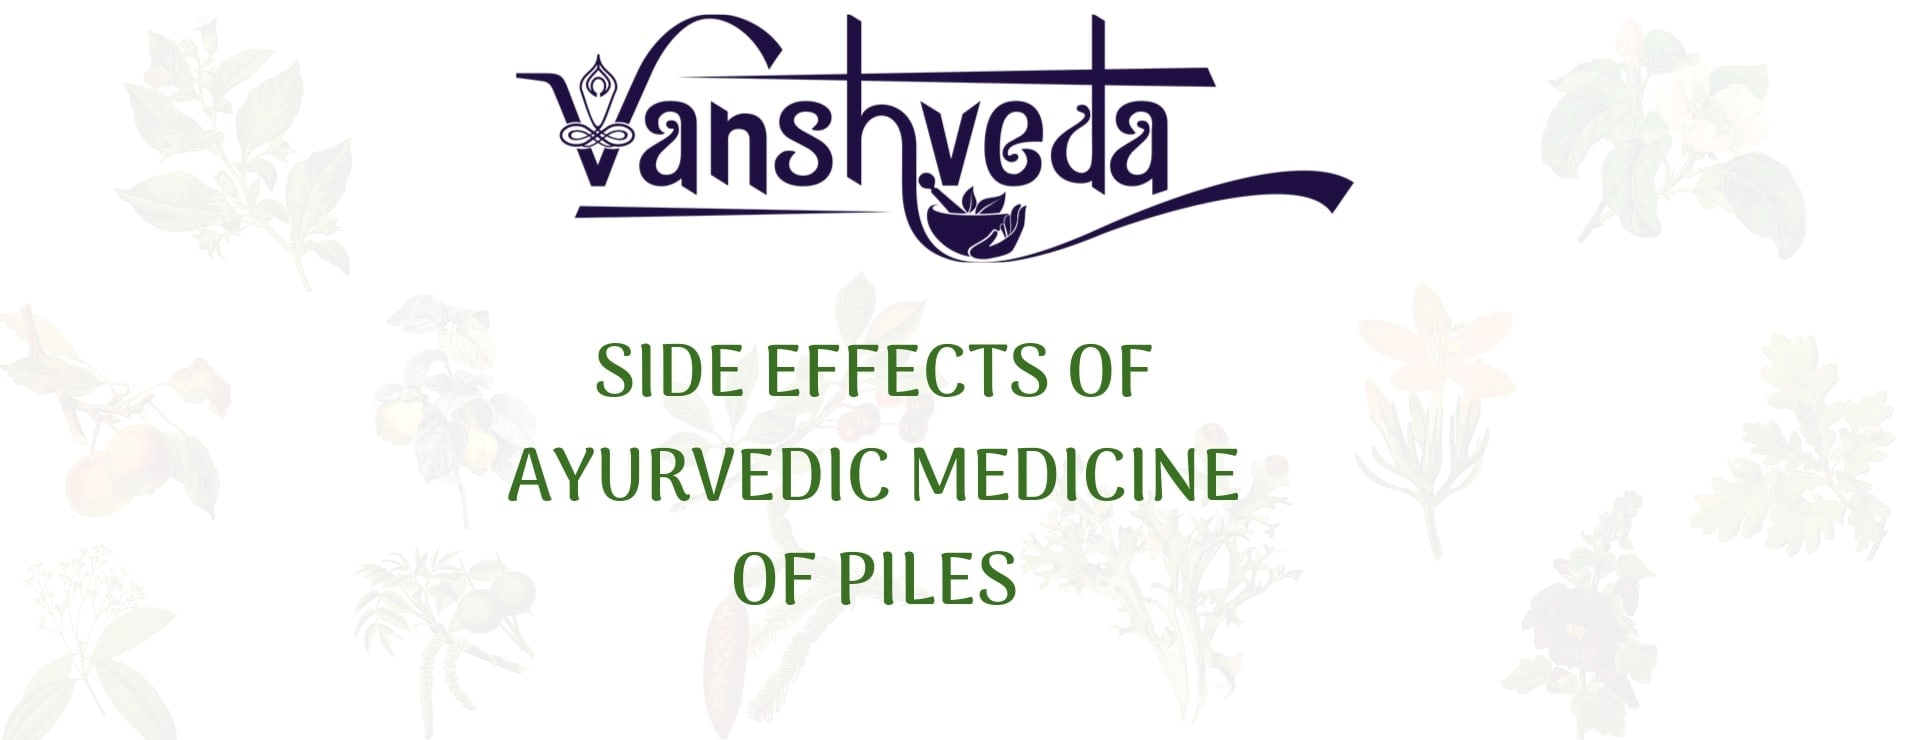 Side Effects of Ayurvedic Medicine of Piles